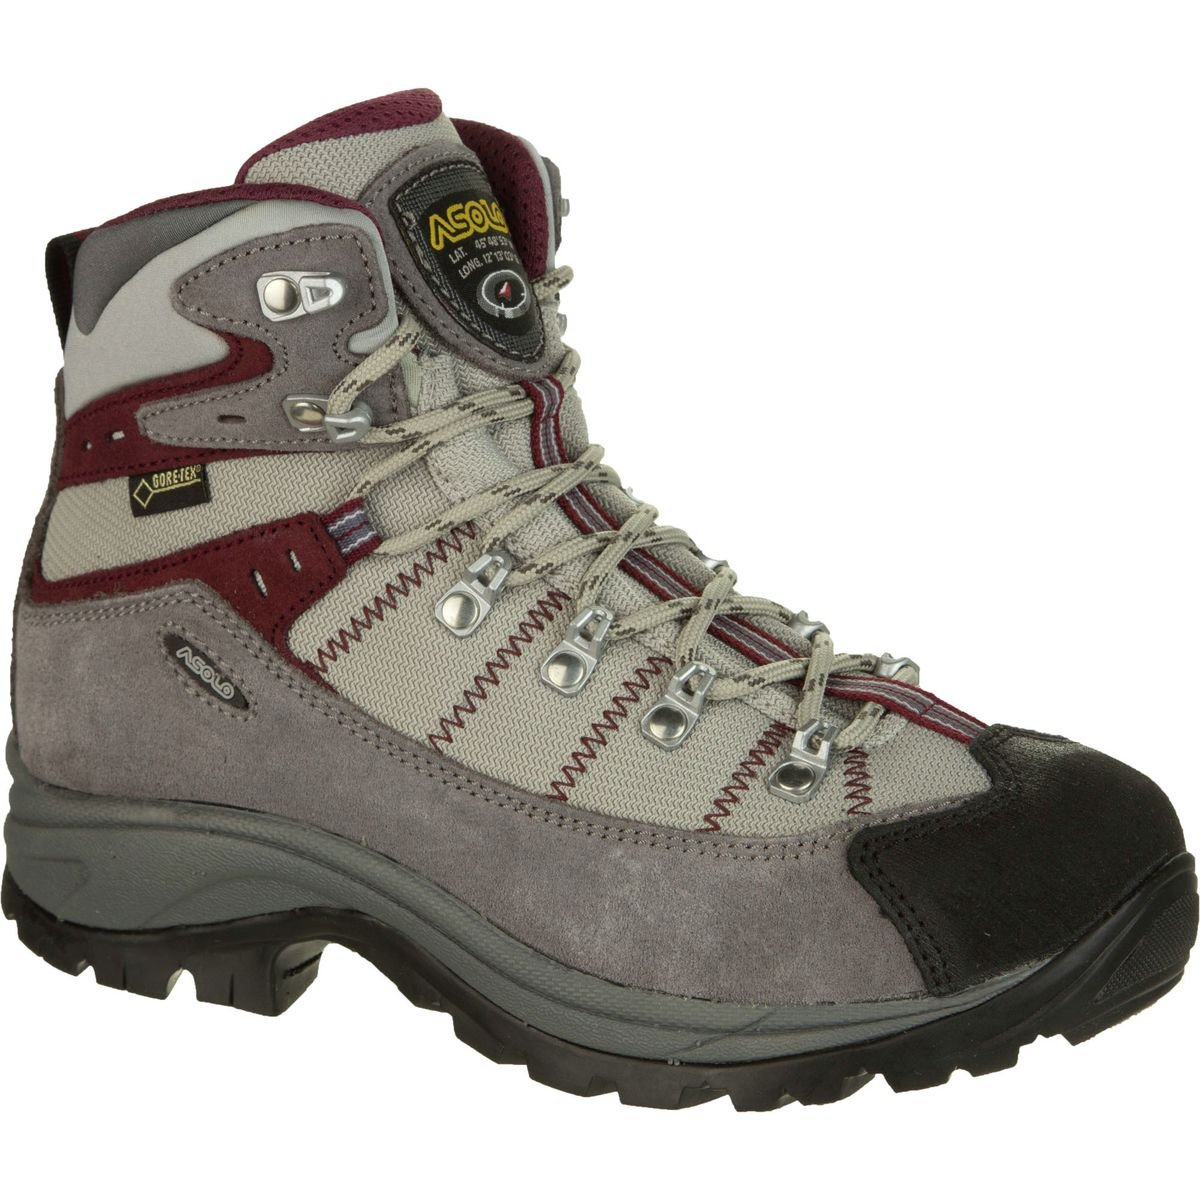 Asolo Revert Gv Boot - Women's Donkey / Grey 8.5